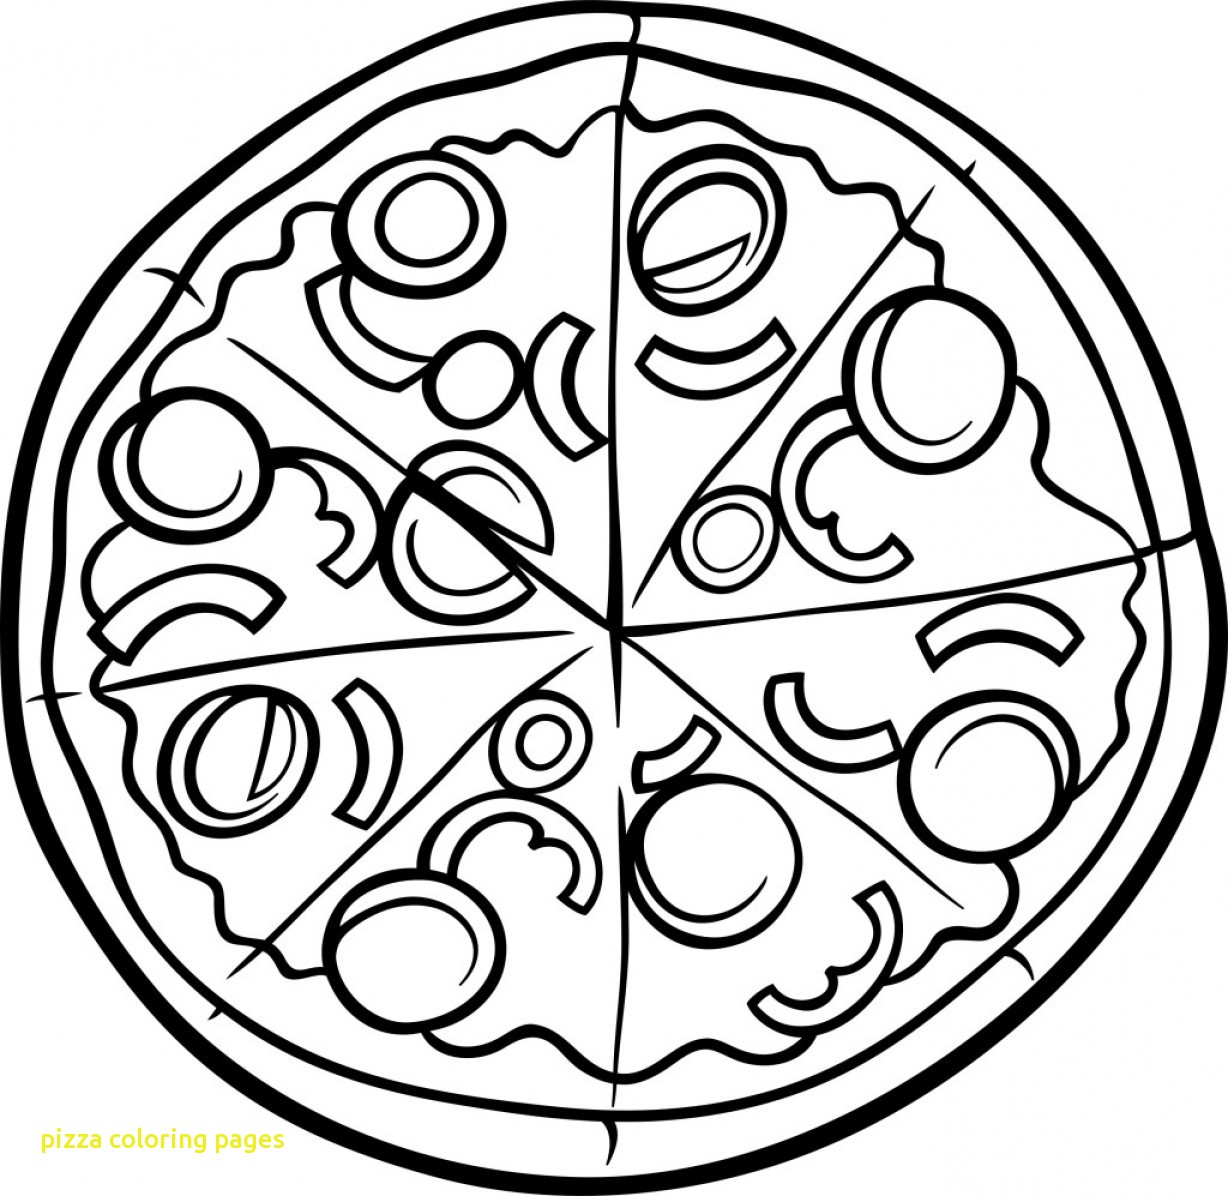 1228x1196 Pizza Coloring Pages With Pizza Coloring Pages Coloringsuite